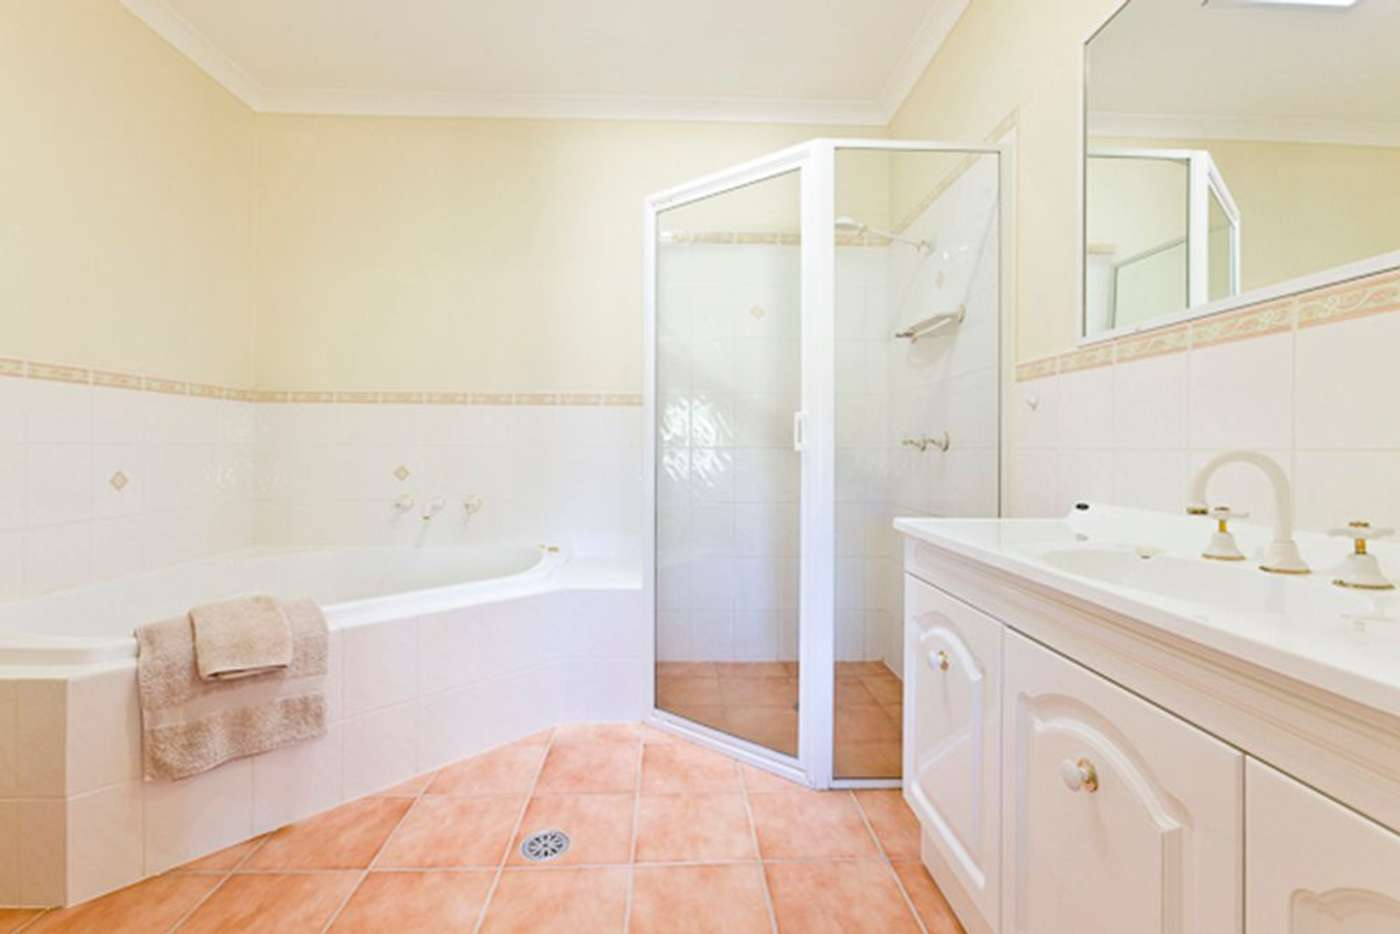 Sixth view of Homely house listing, 27 Essendon Road, Bungendore NSW 2621